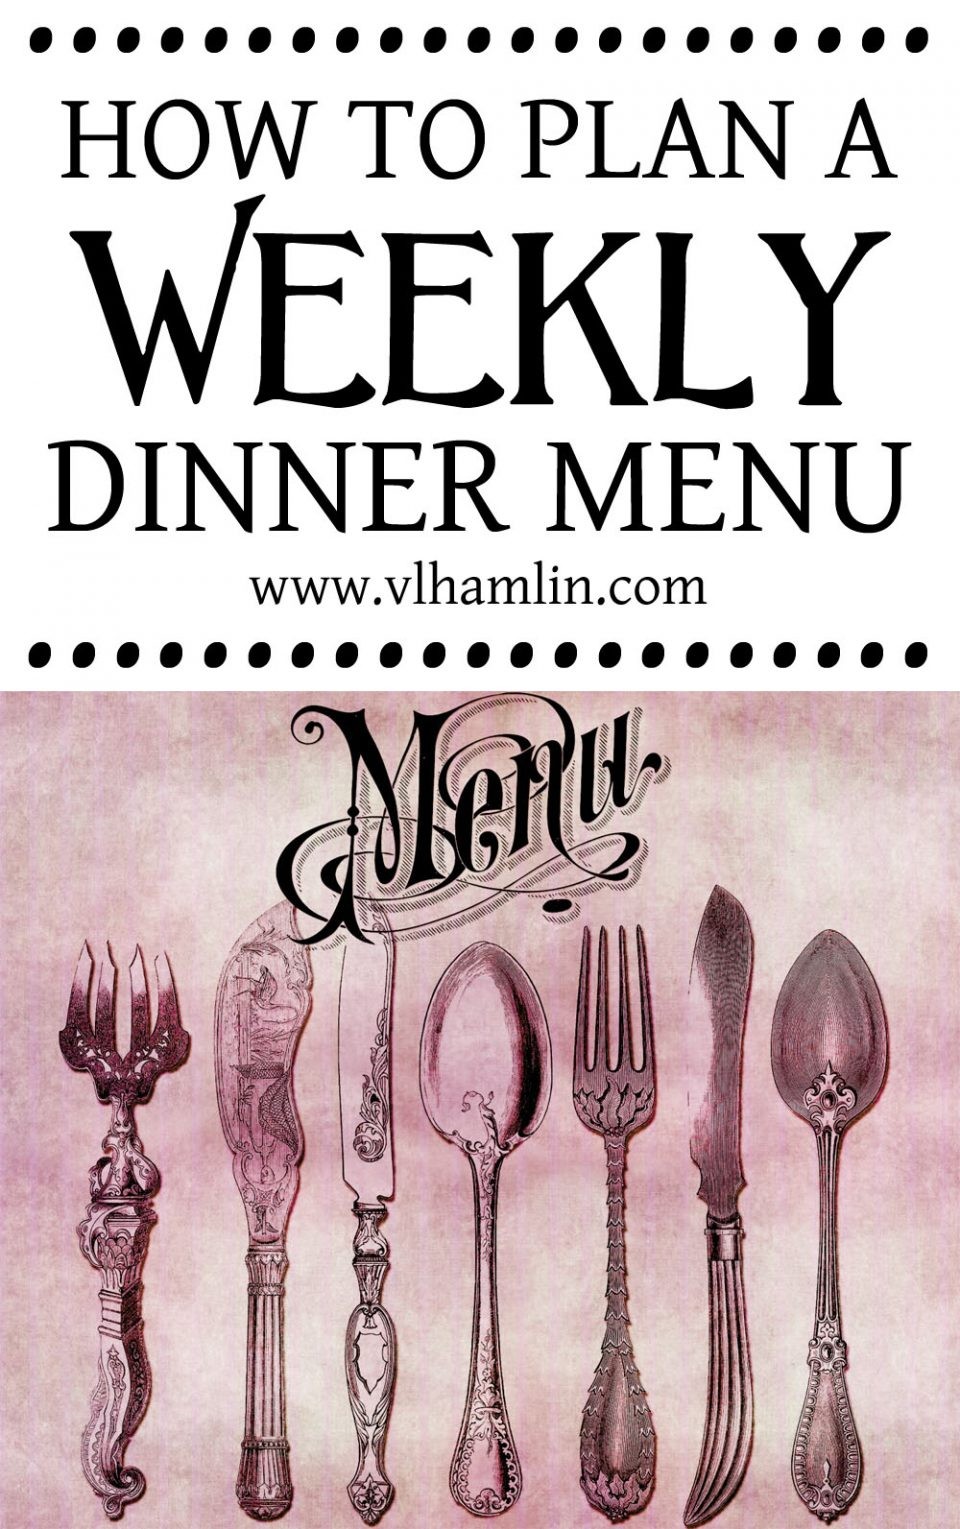 How to Plan a Weekly Dinner Menu 1